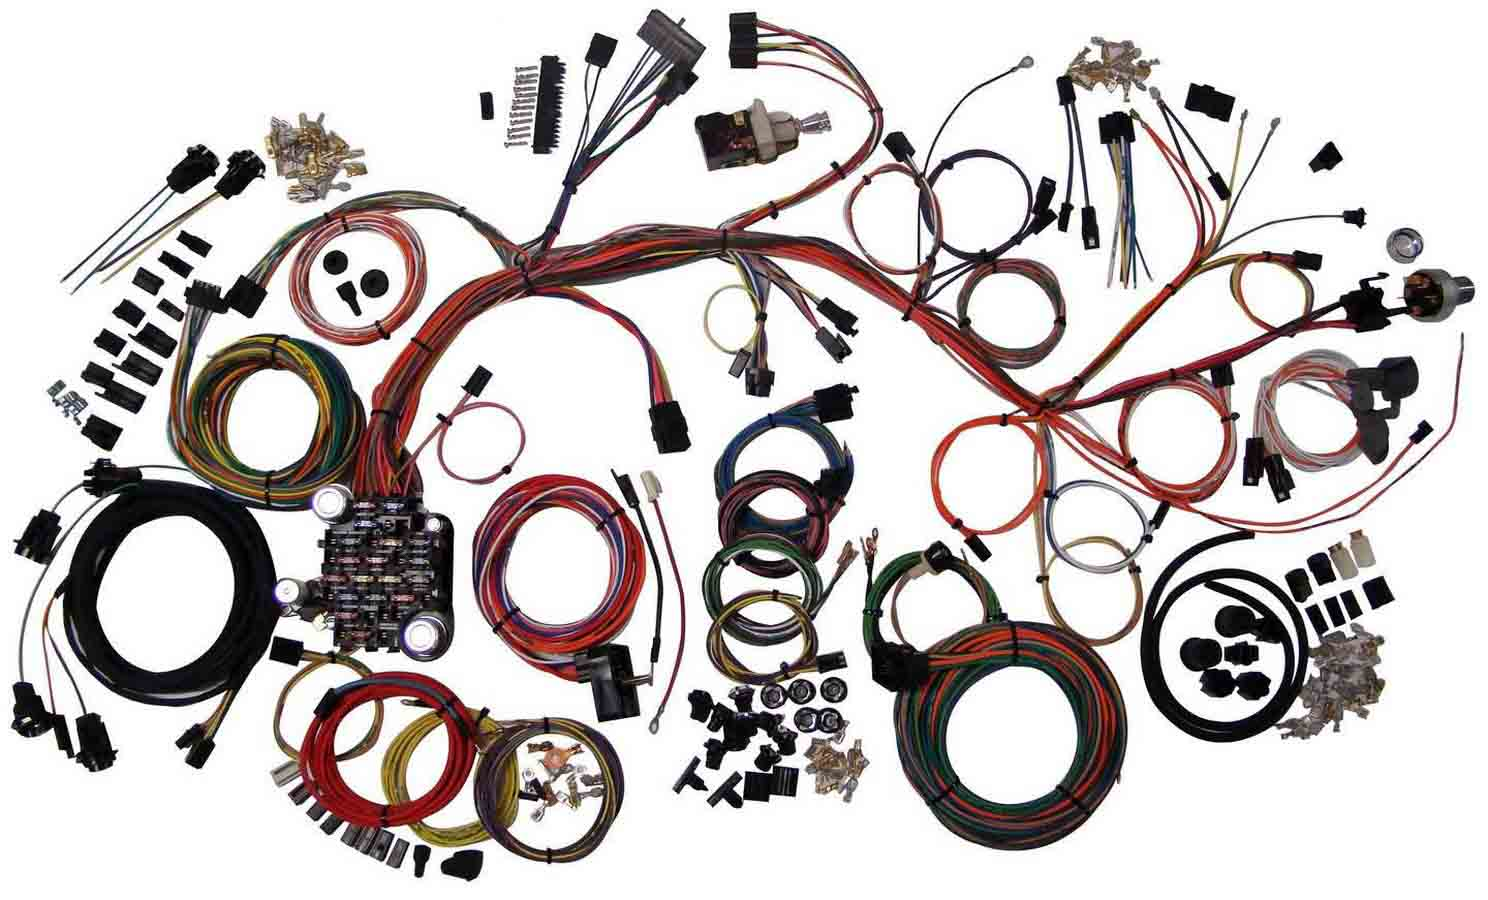 American Auto Wire Diagrams 66 Mustang Ignition Switch Wiring Diagram Grand Prix Autowire 65 Chevy Truck 61 64 Impala Harness